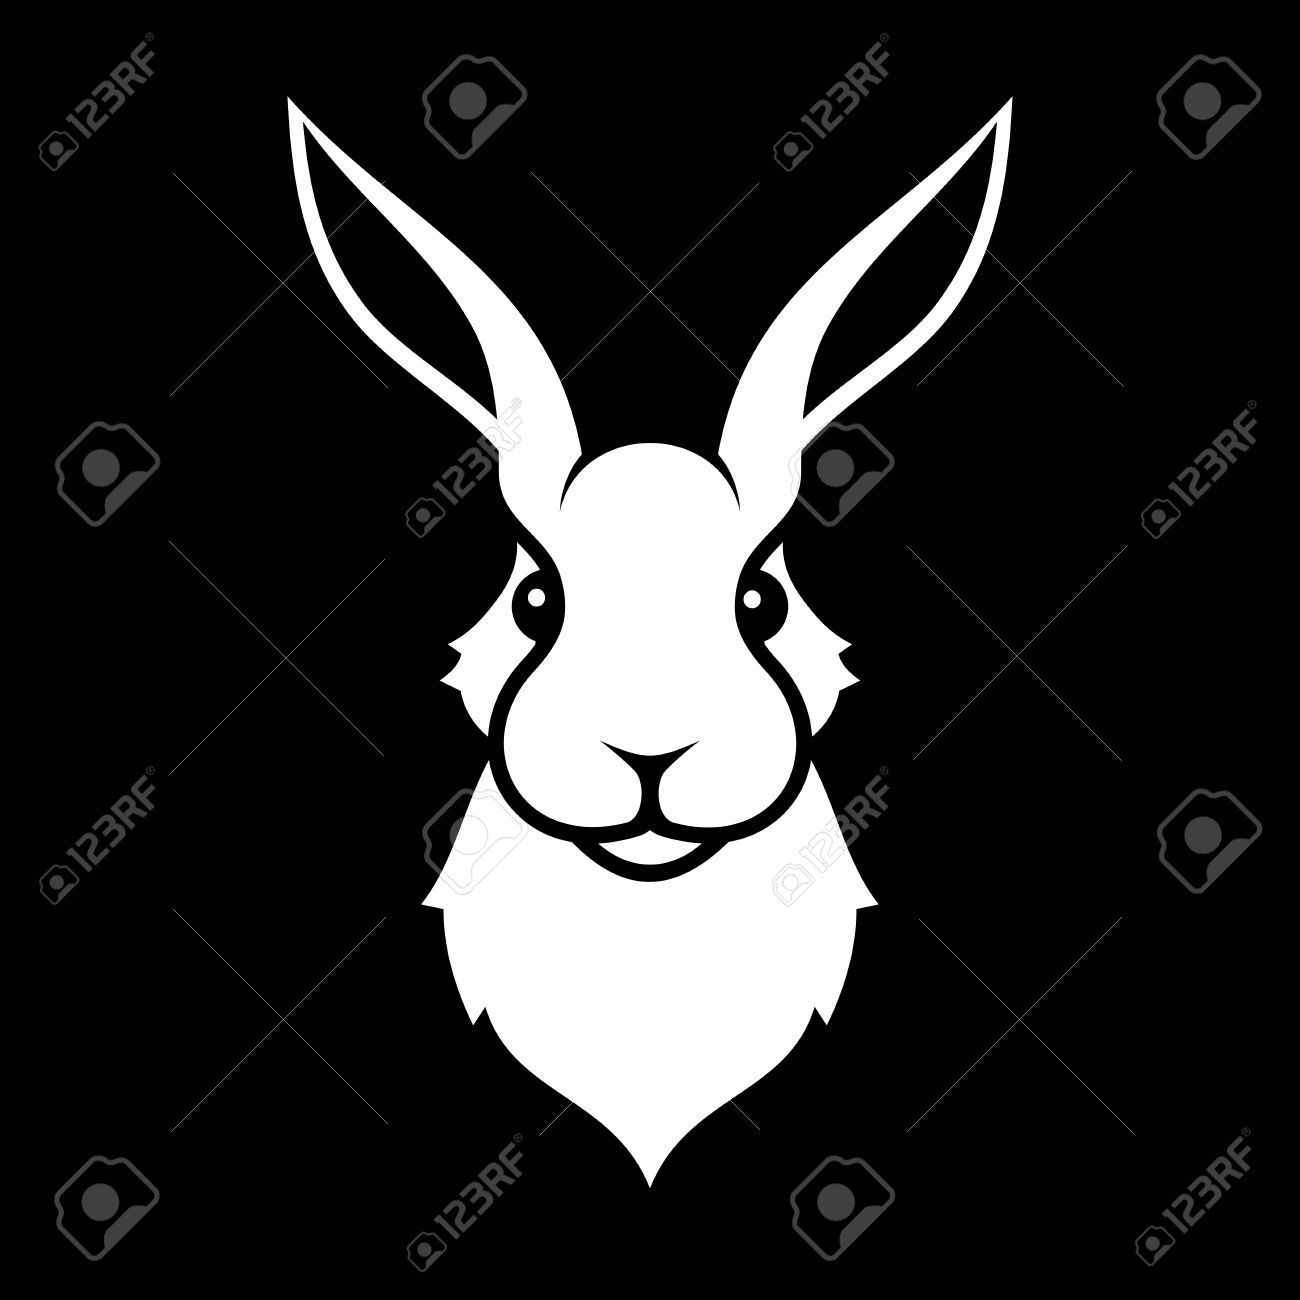 image result for free rabbit clipart black and white [ 1300 x 1300 Pixel ]